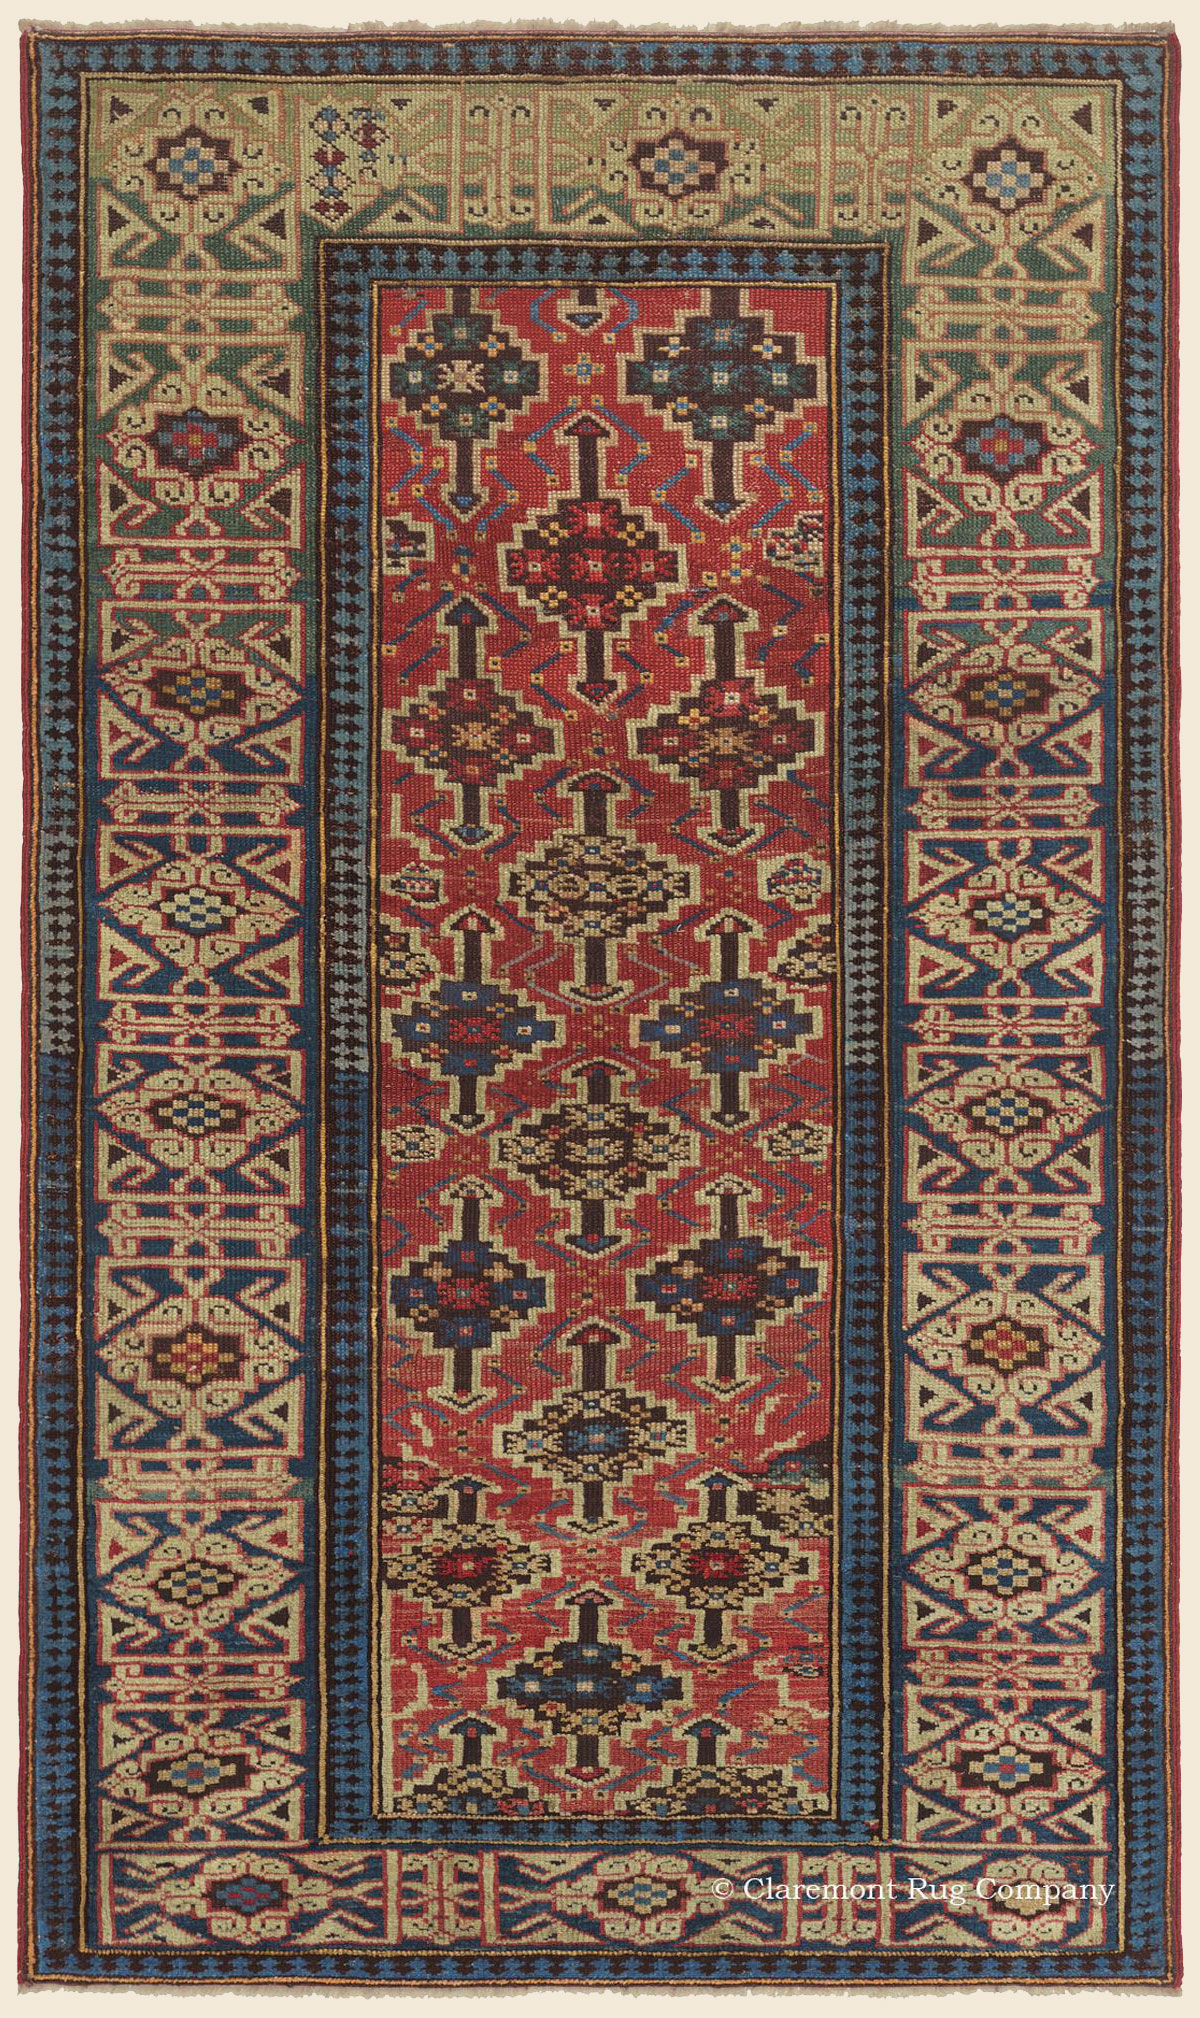 Antique Northeast Caucasian 19th Century Kuba carpet